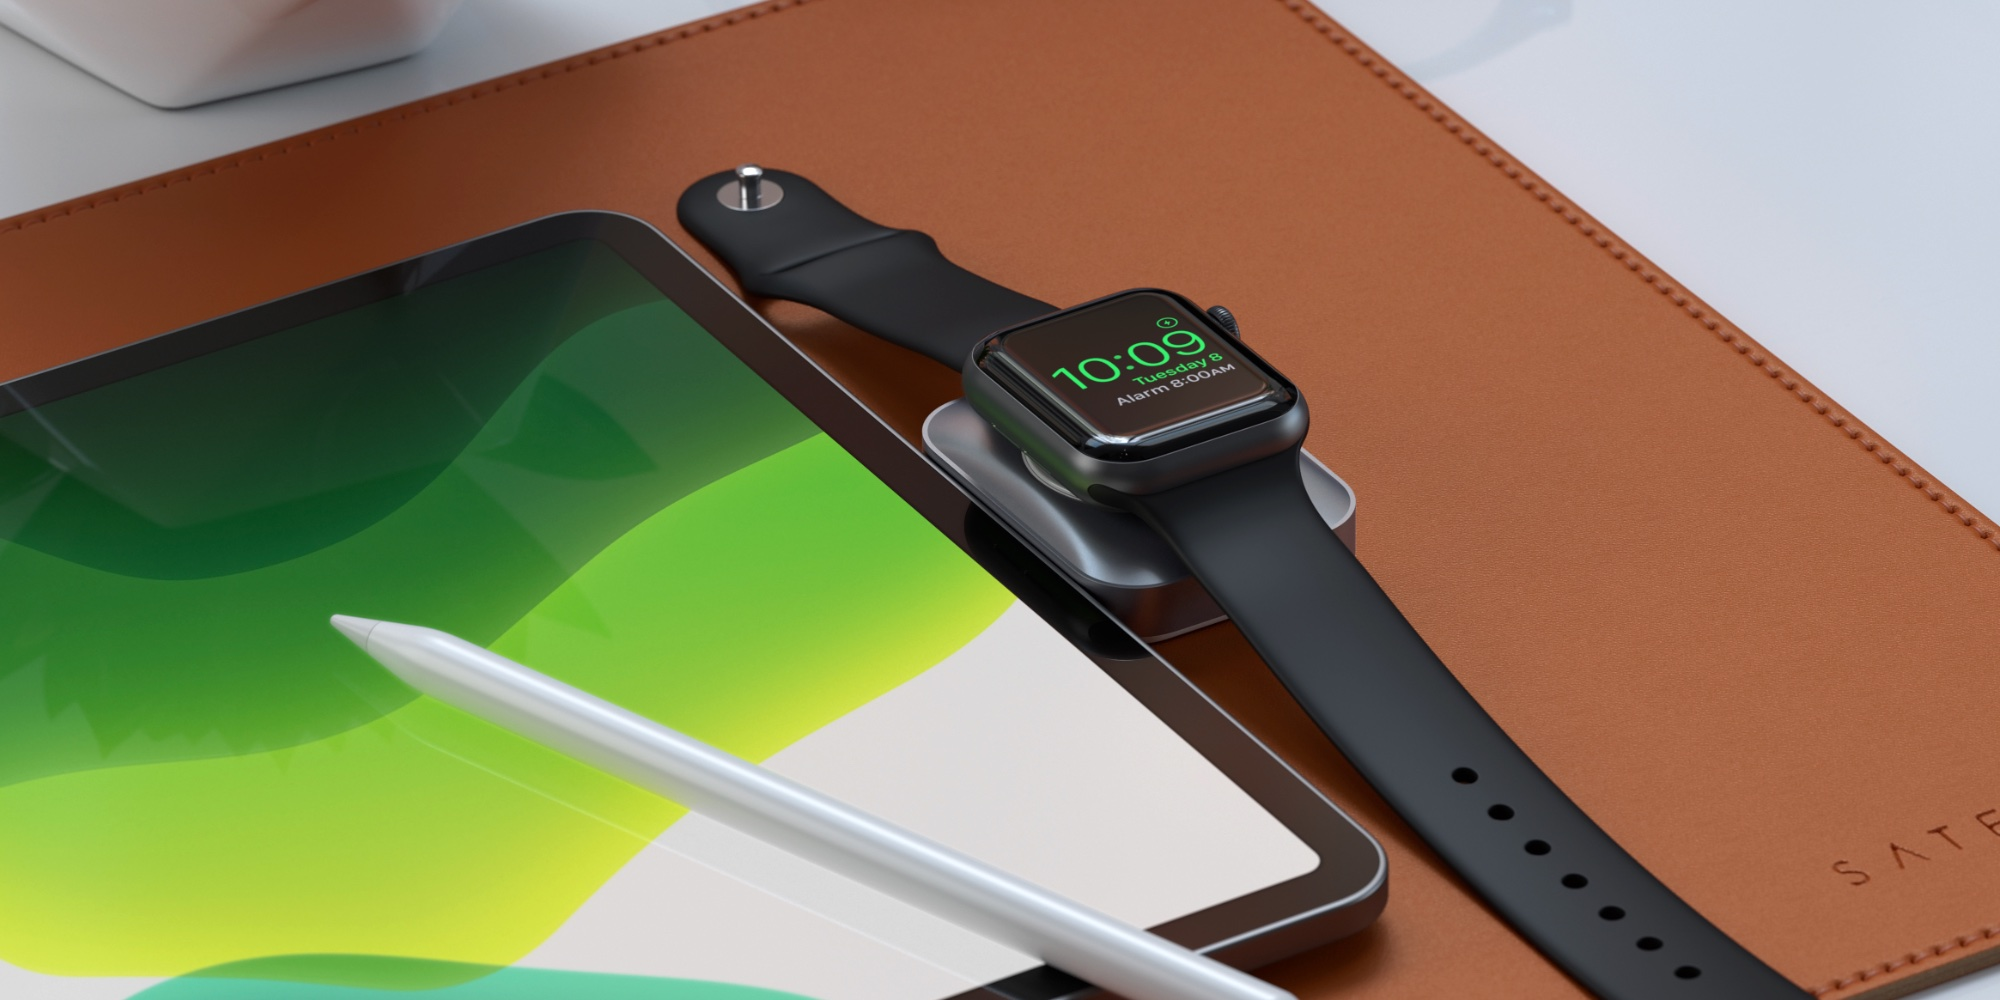 Satechi Watch AirPods Charger